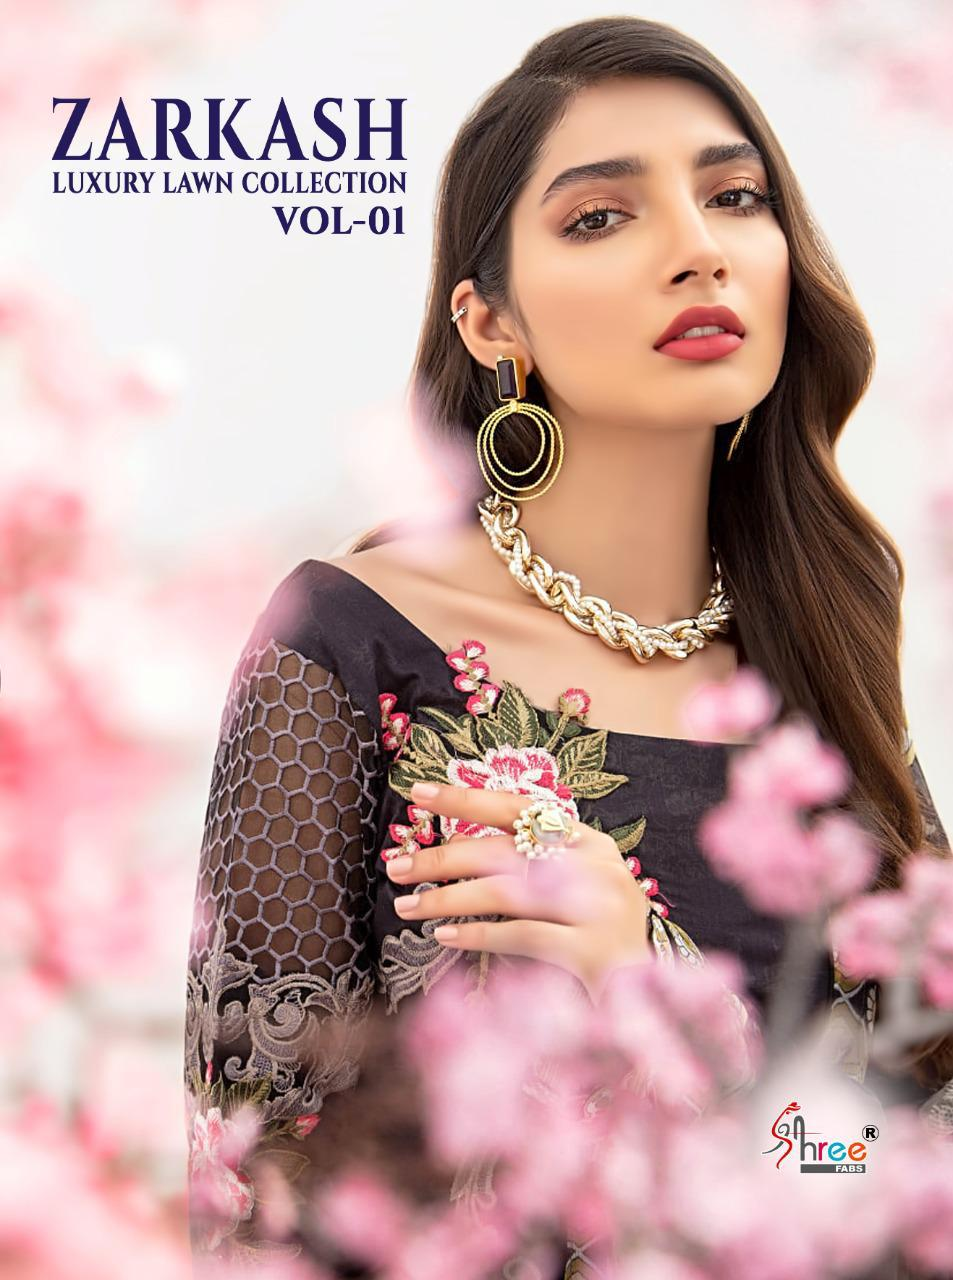 SHREE FAB ZARKASH LUXURY LAWN COLLECTION VOL 01 REGAL LOOK SALWAR SUIT WITH SIFFON DUPATTA CATALOG